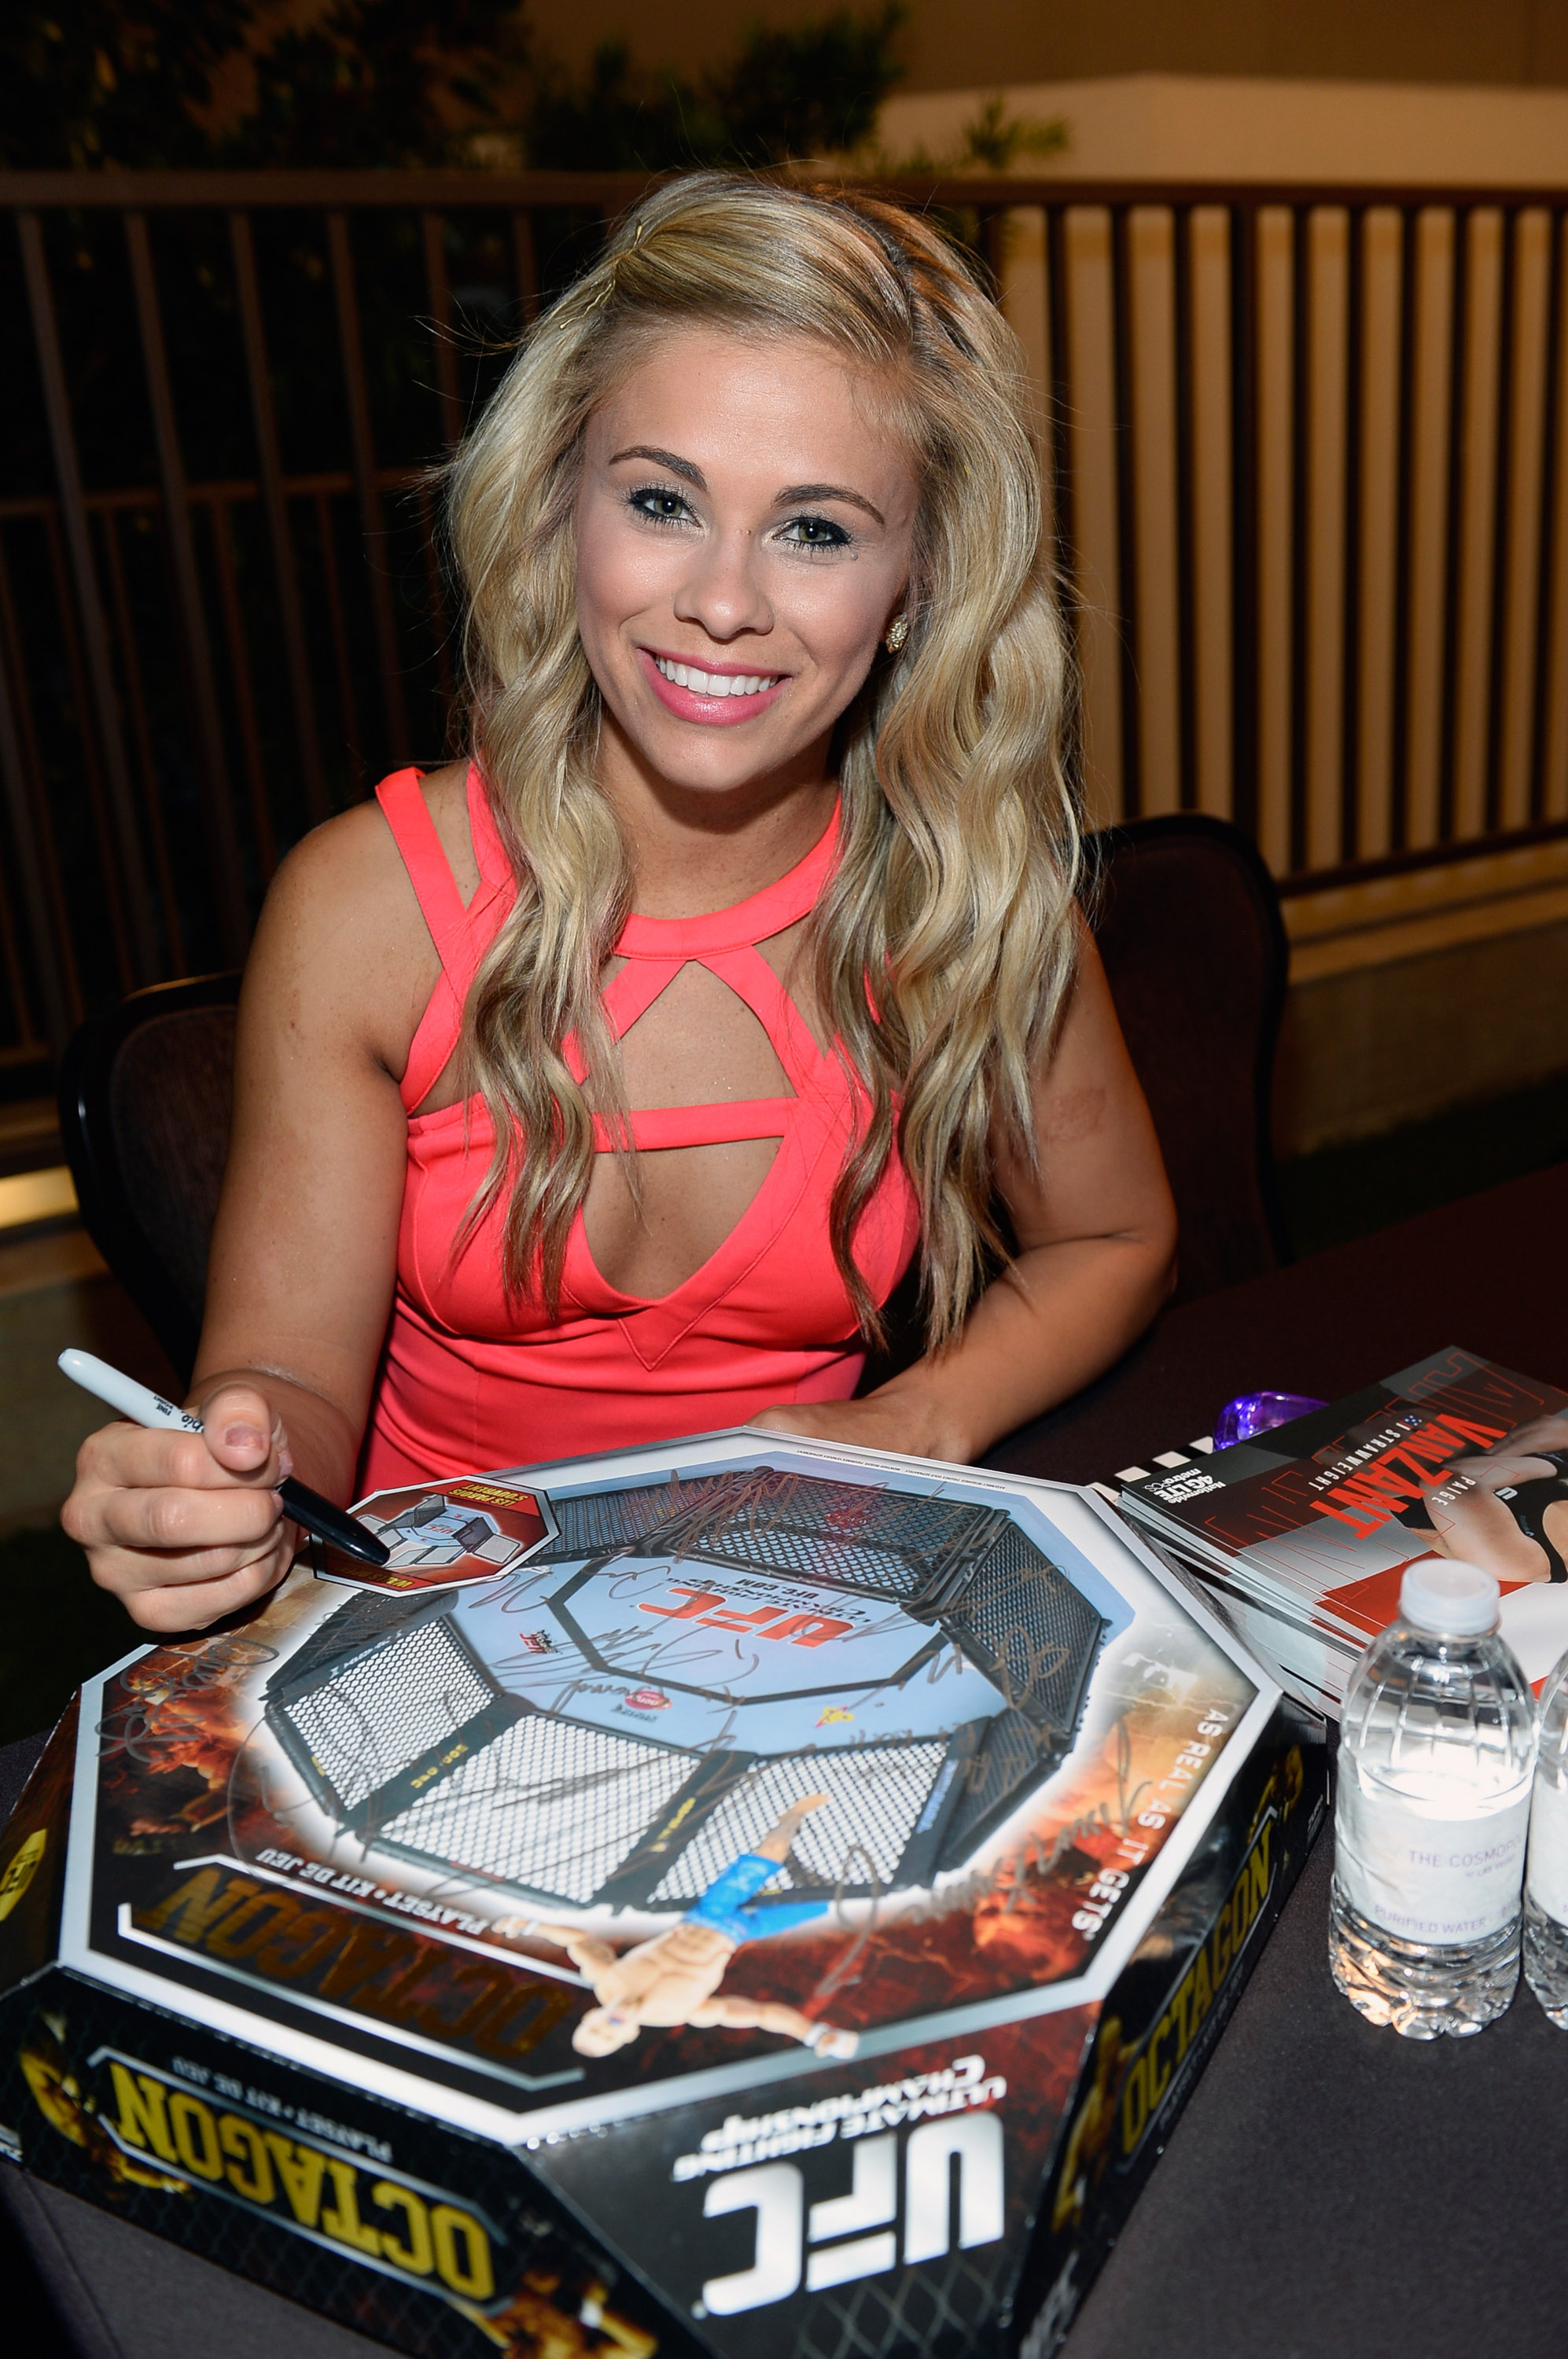 Young Paige Vanzant nude photos 2019